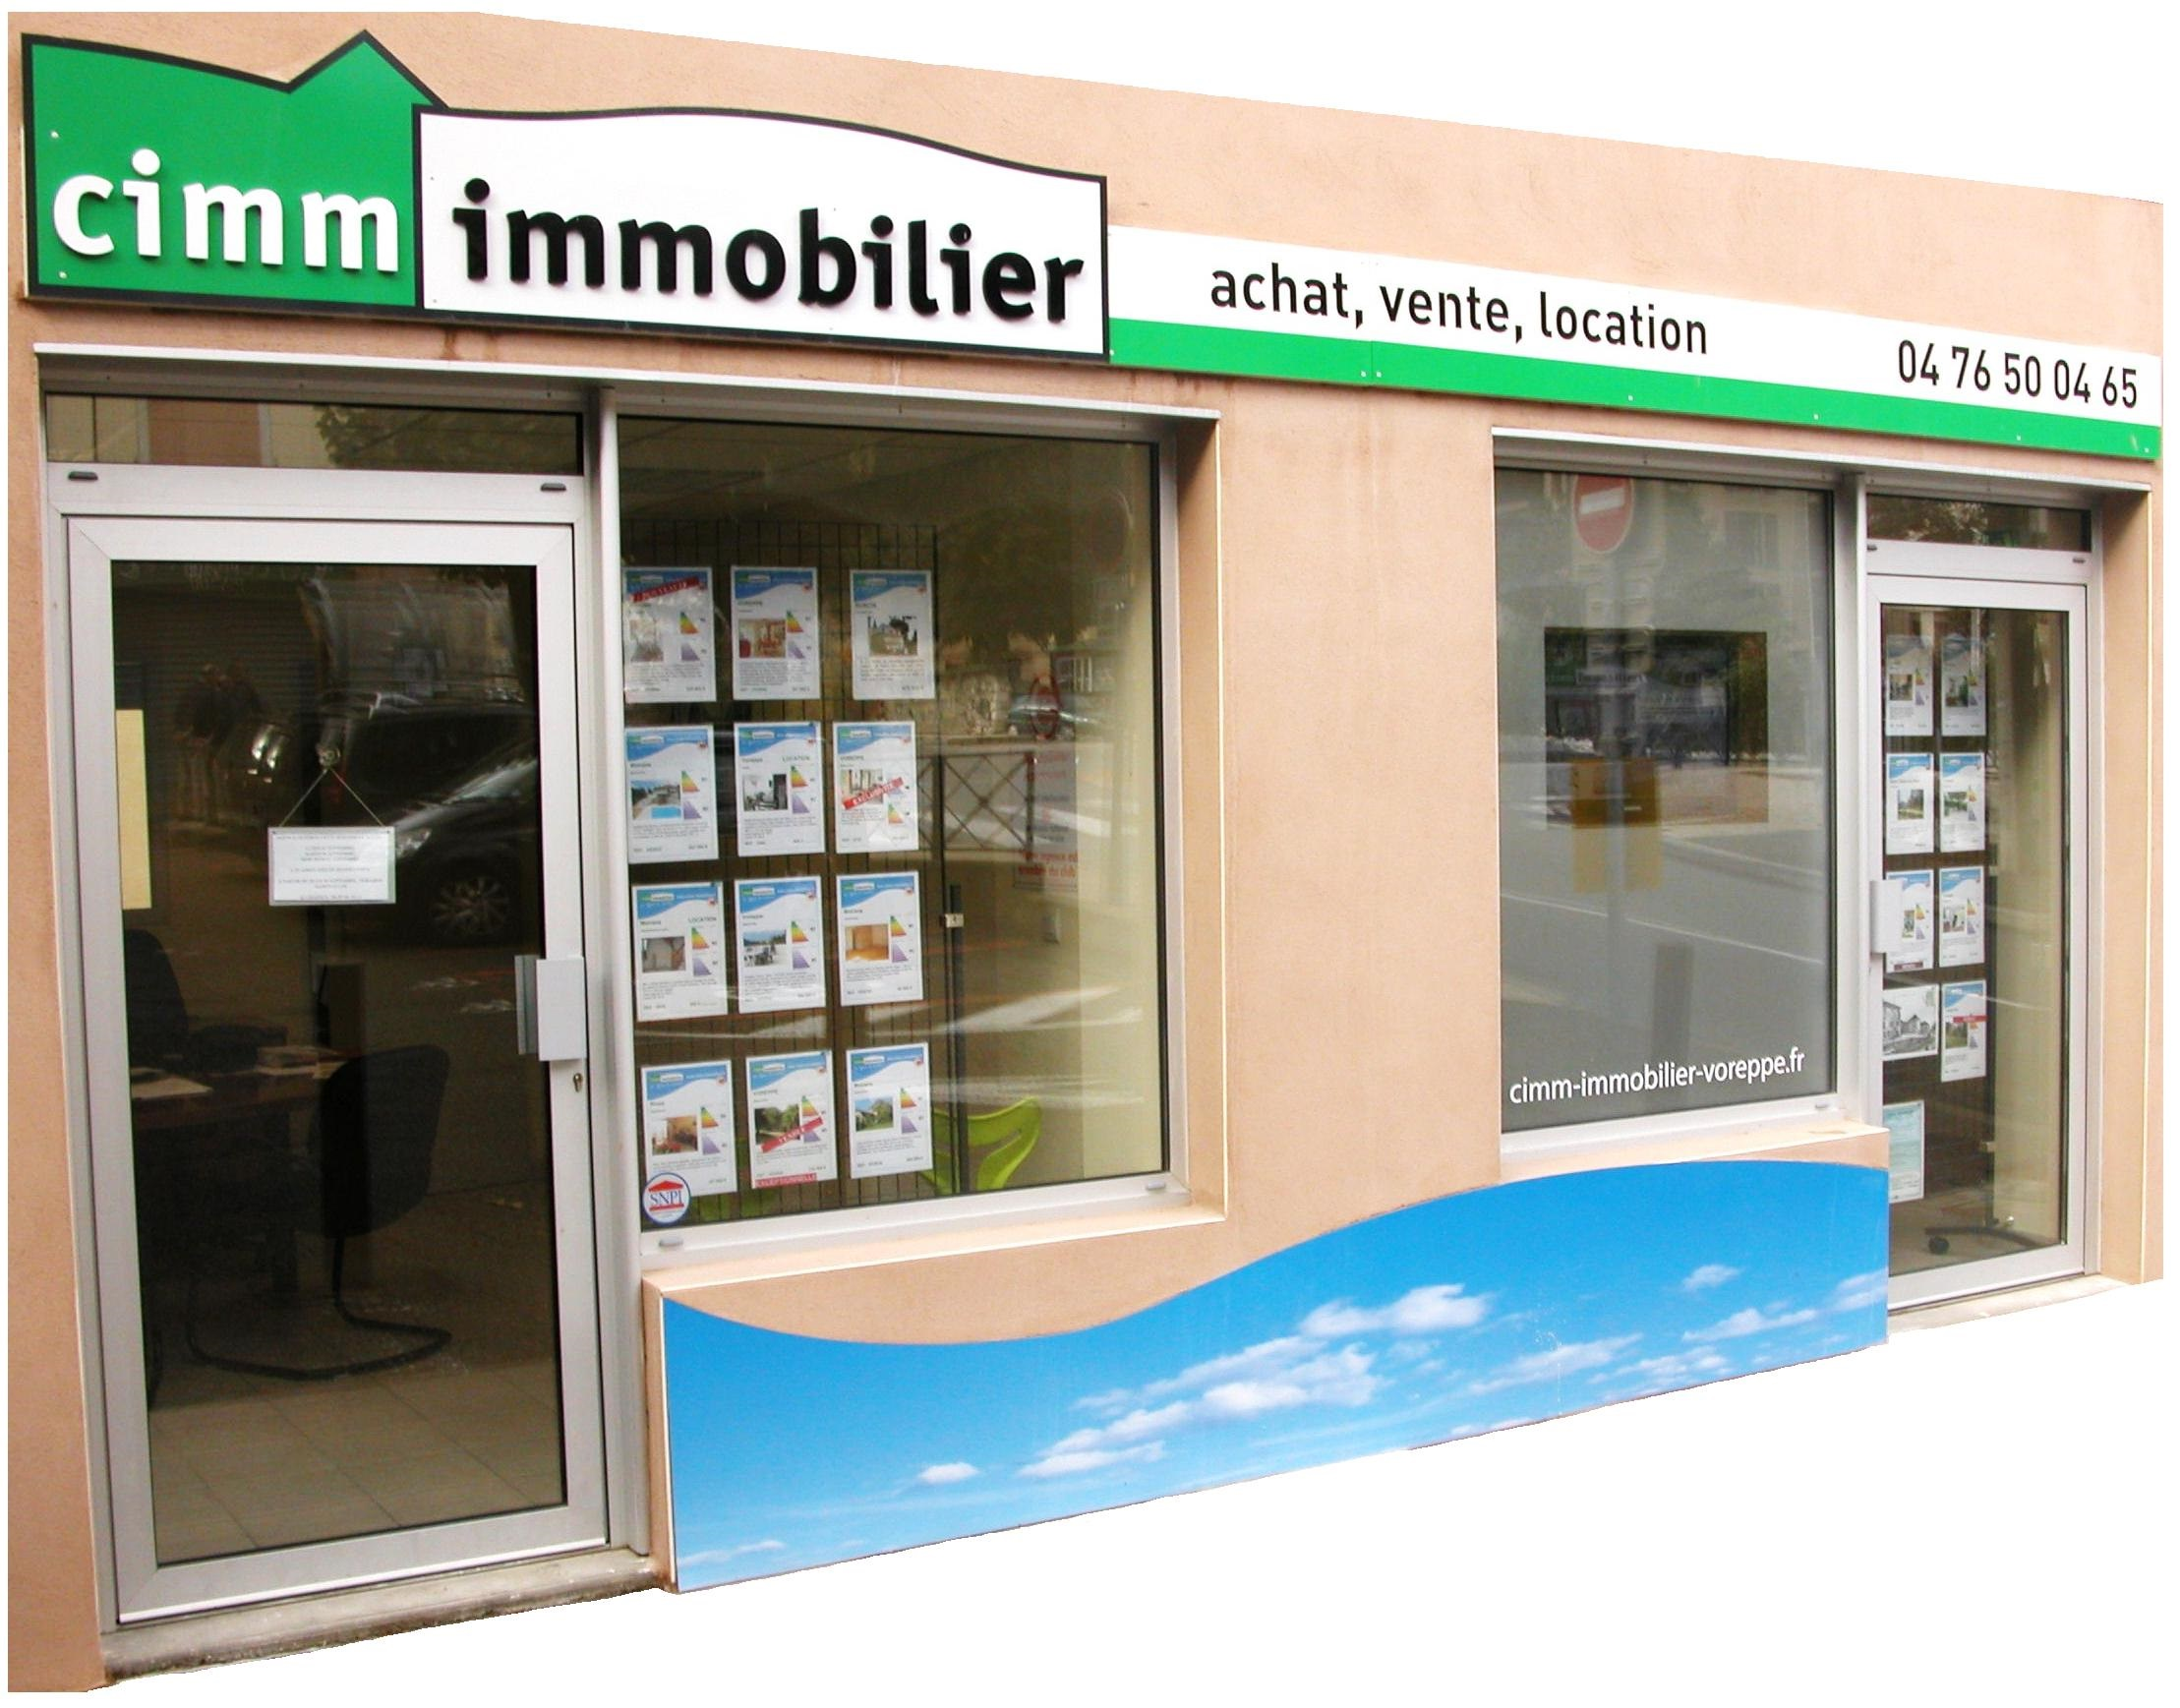 Agence cimm immobilier voreppe